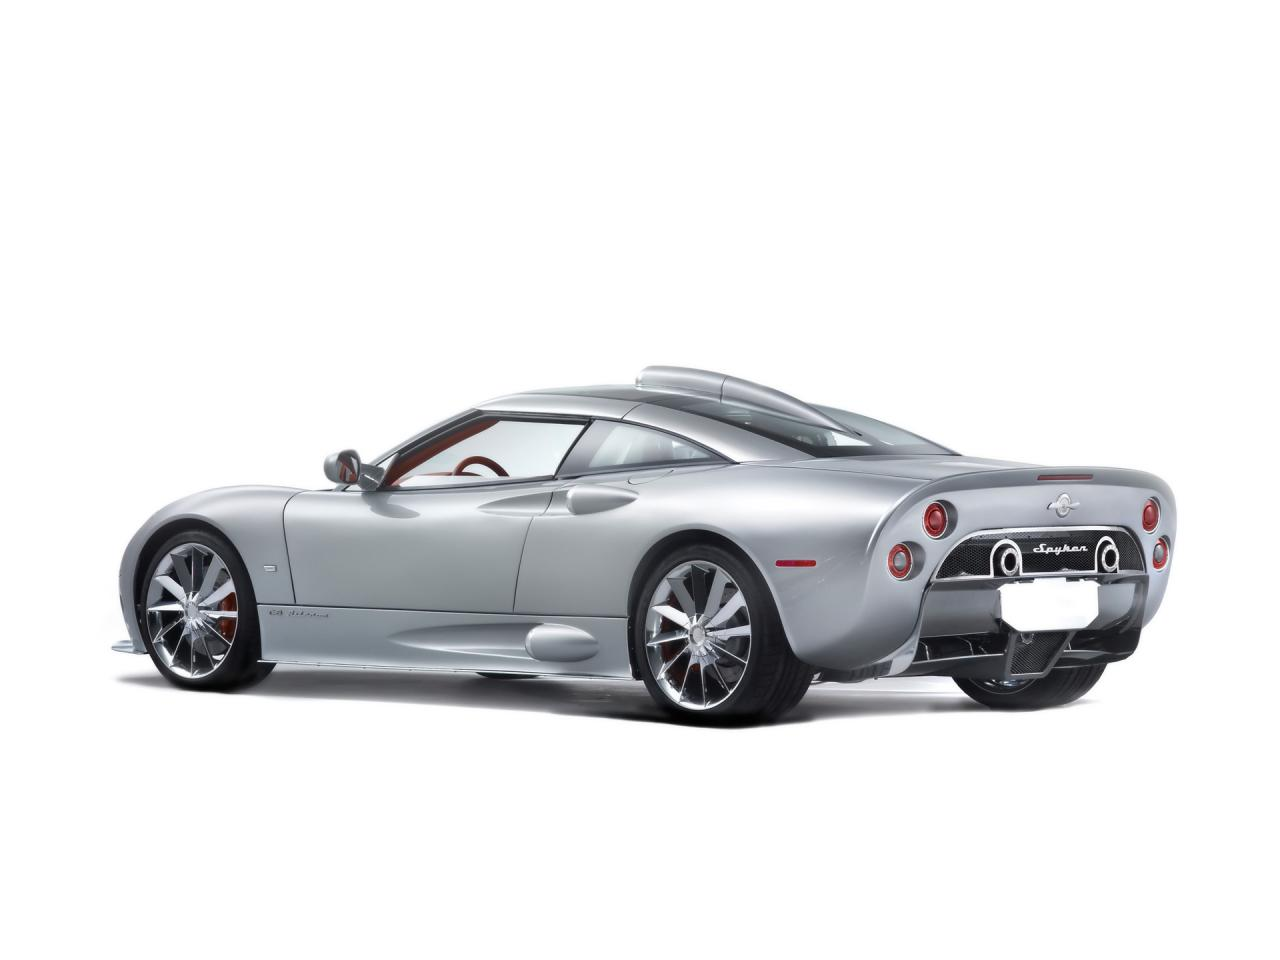 Spyker c12 photo - 3